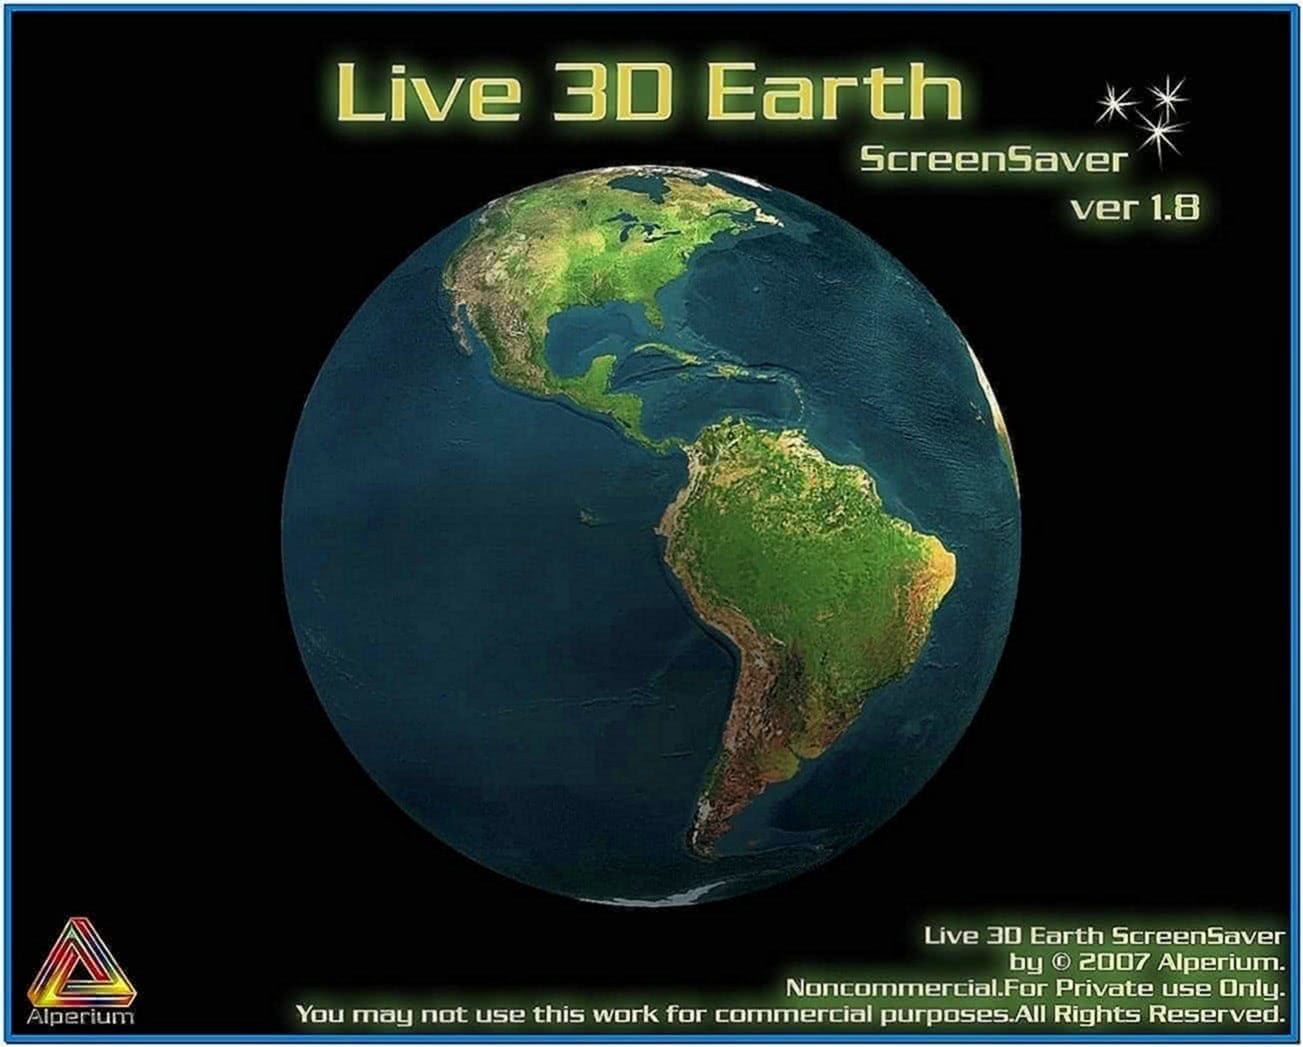 Live 3D Earth Screensaver